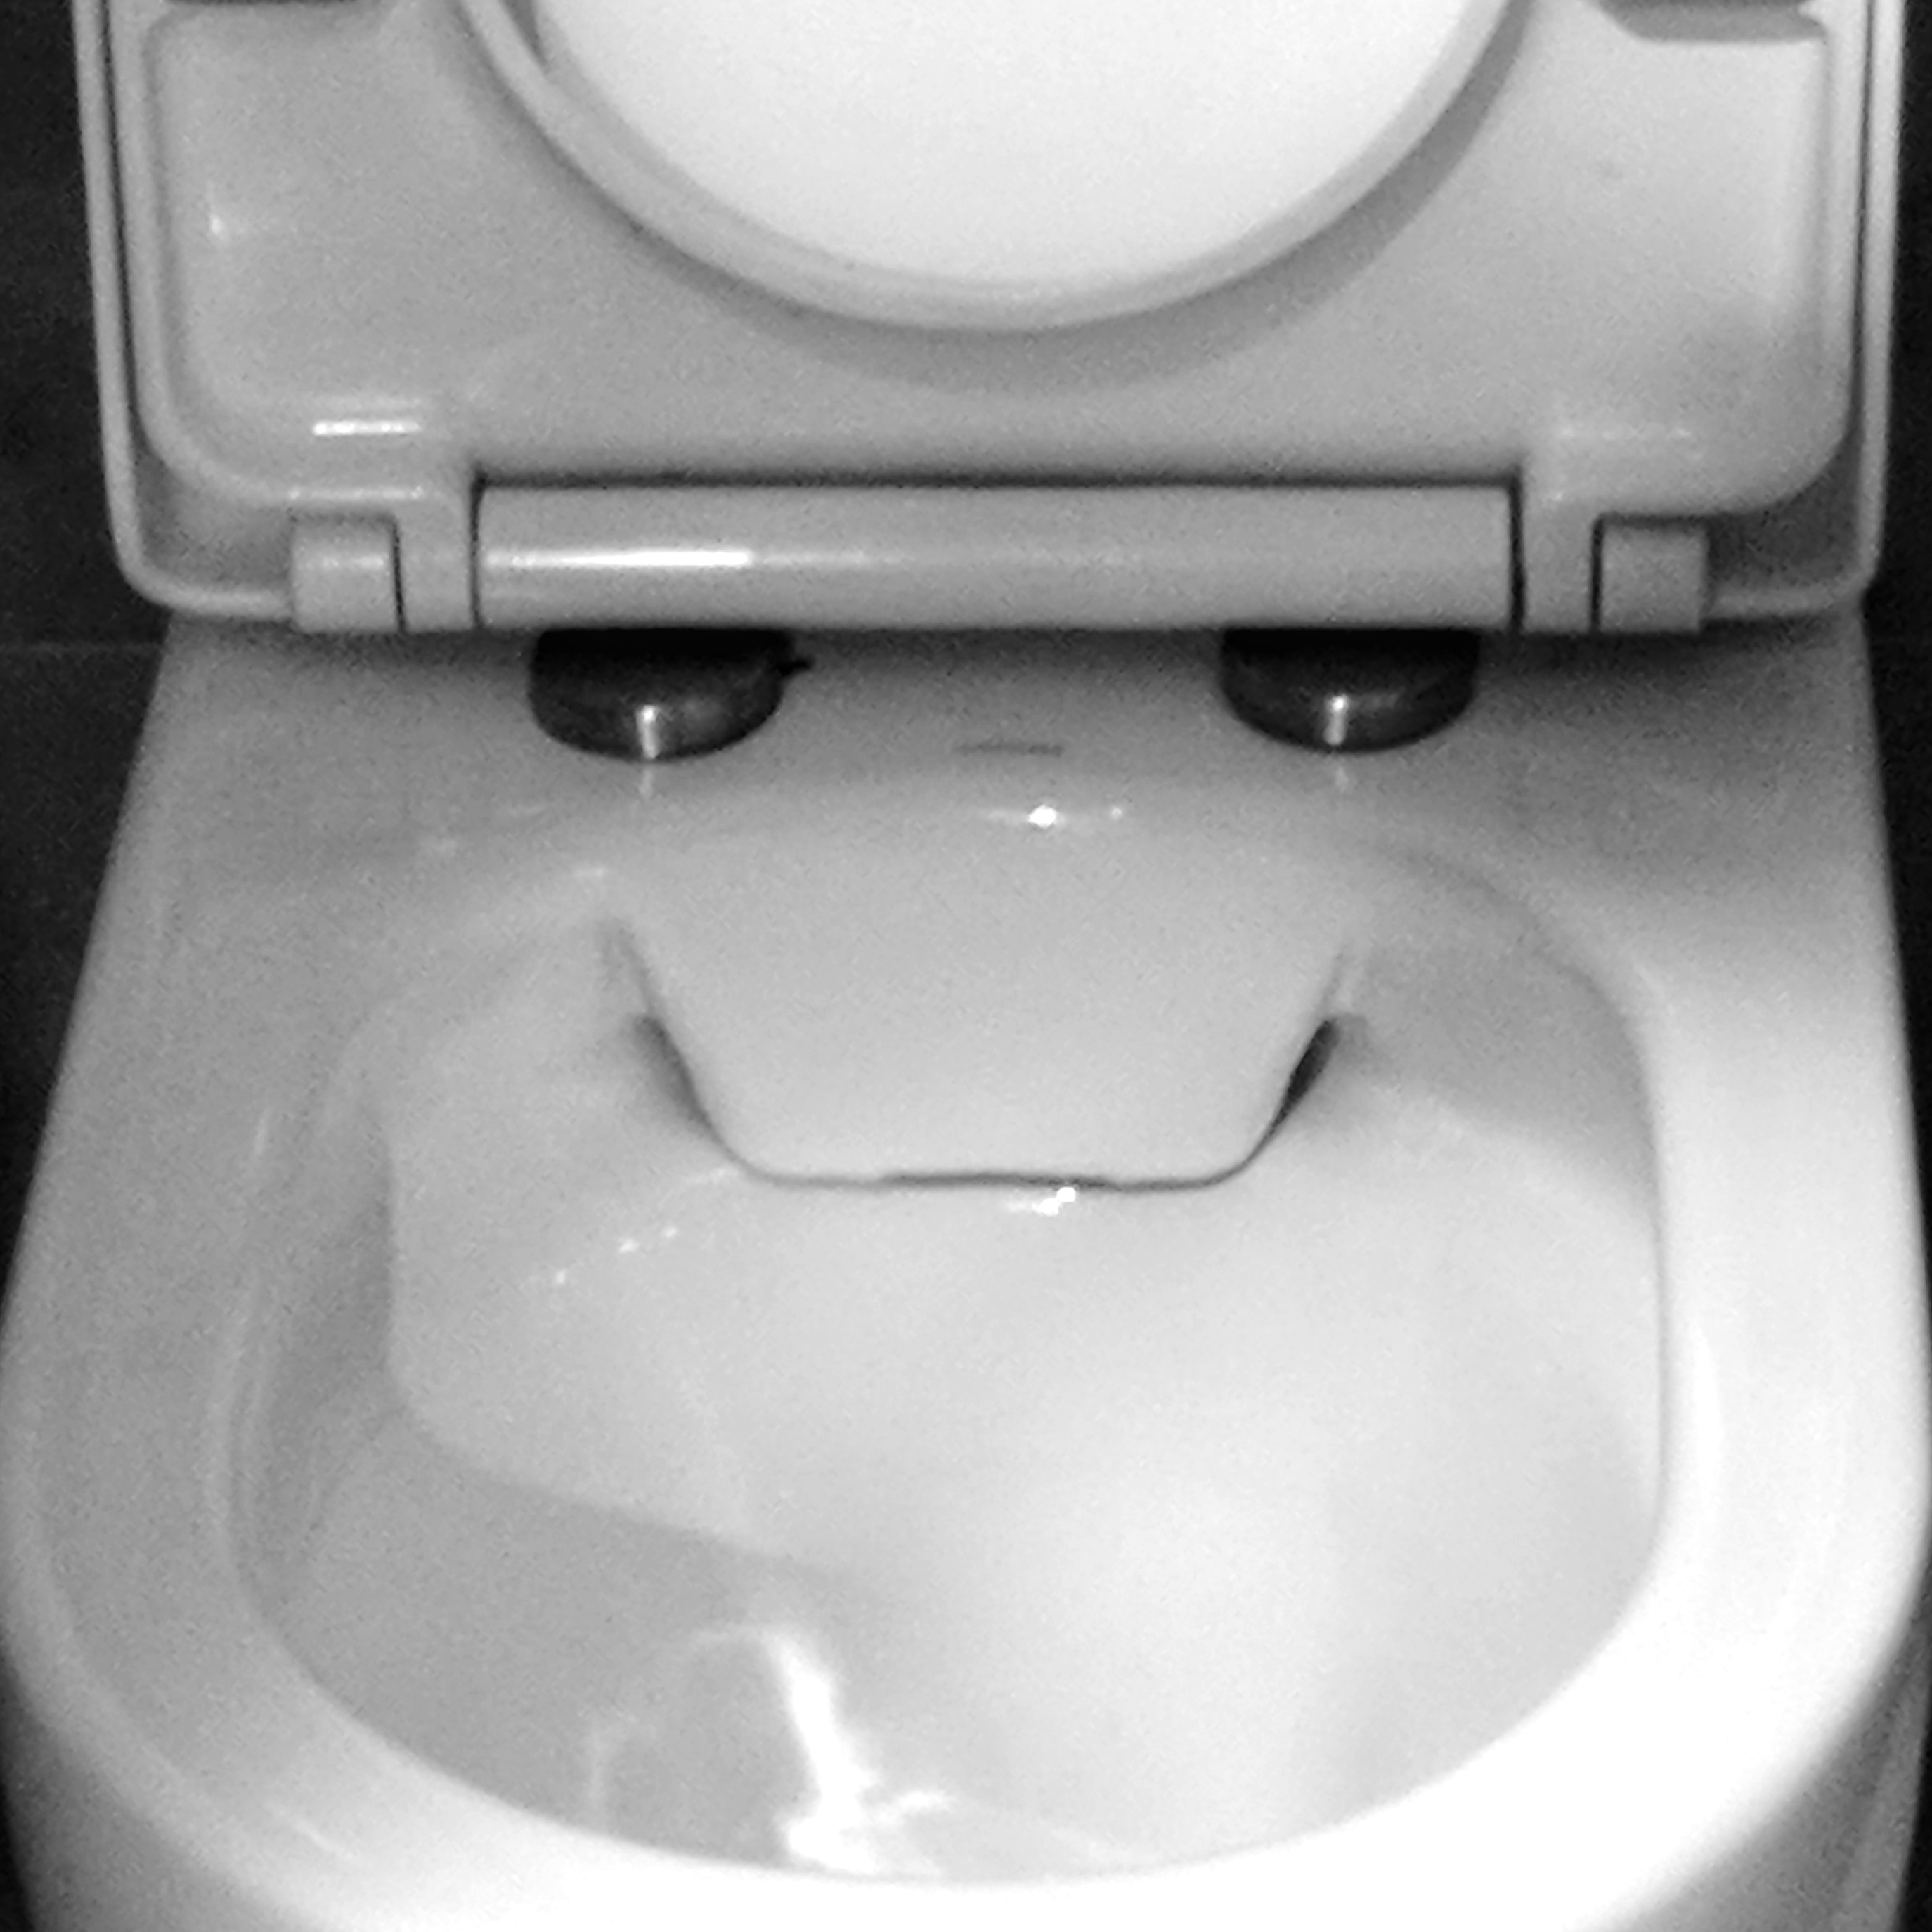 Happy face toilet